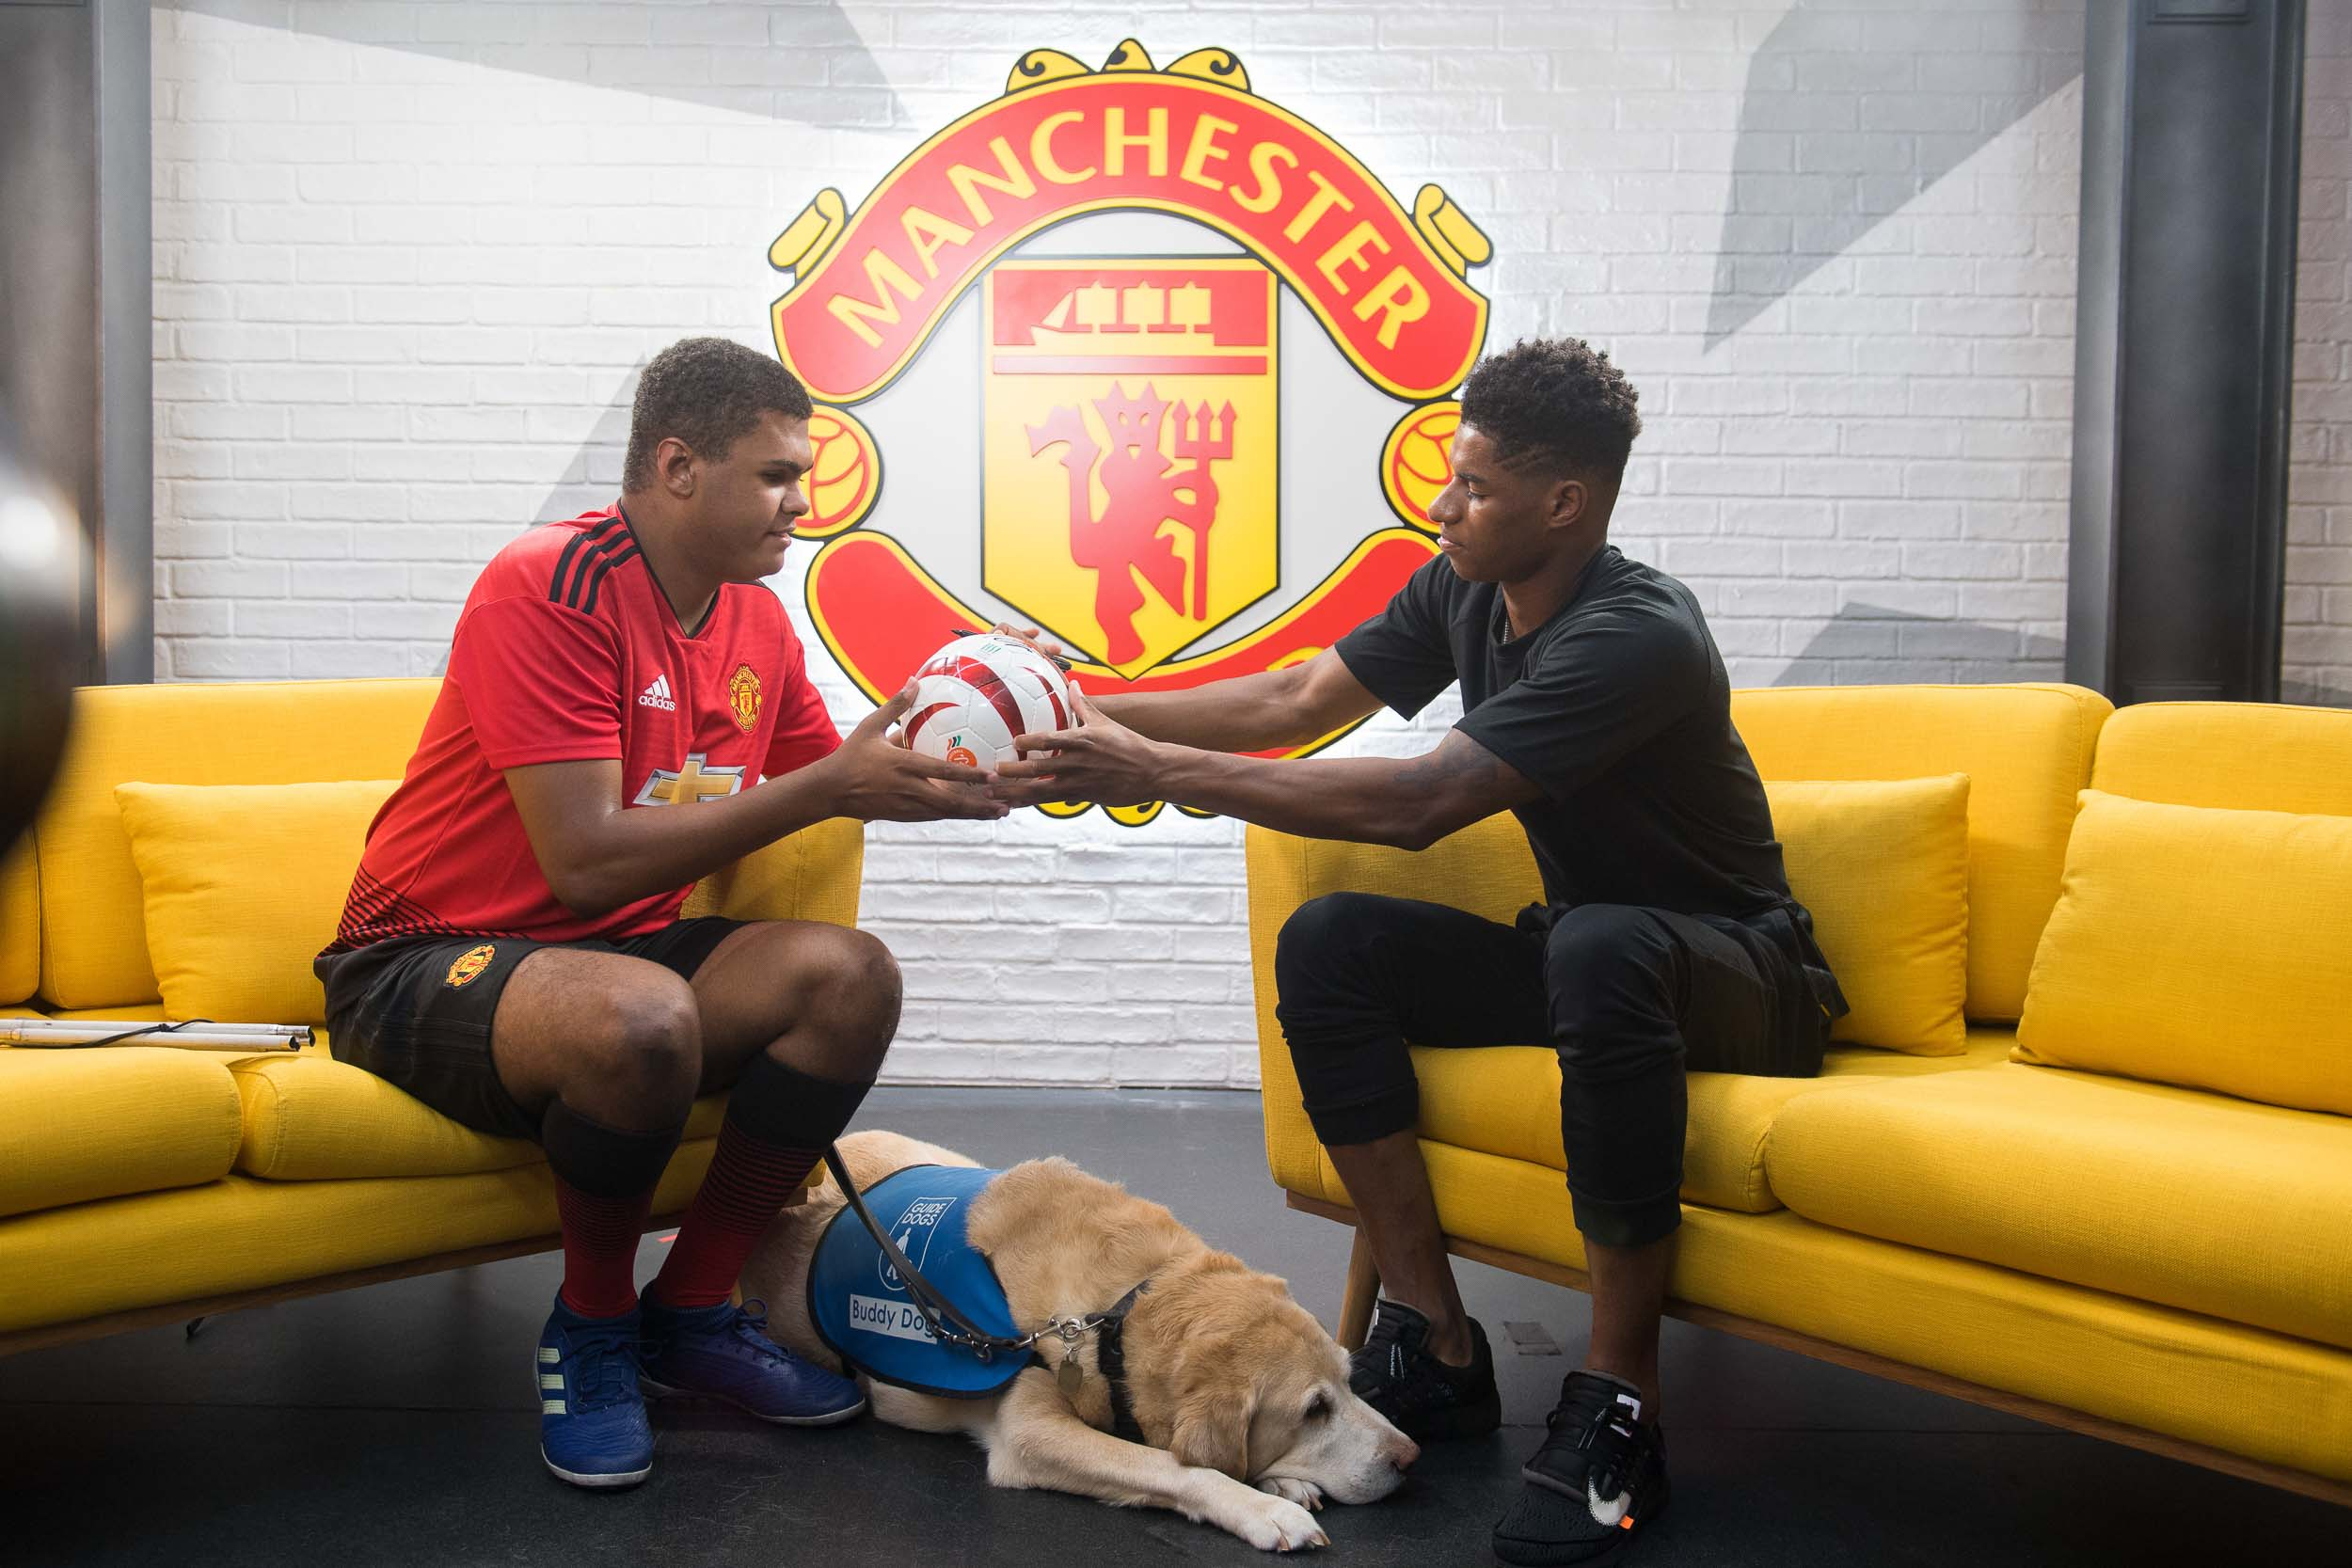 Manchester United Footballer Rashford with Guide Dog Charity